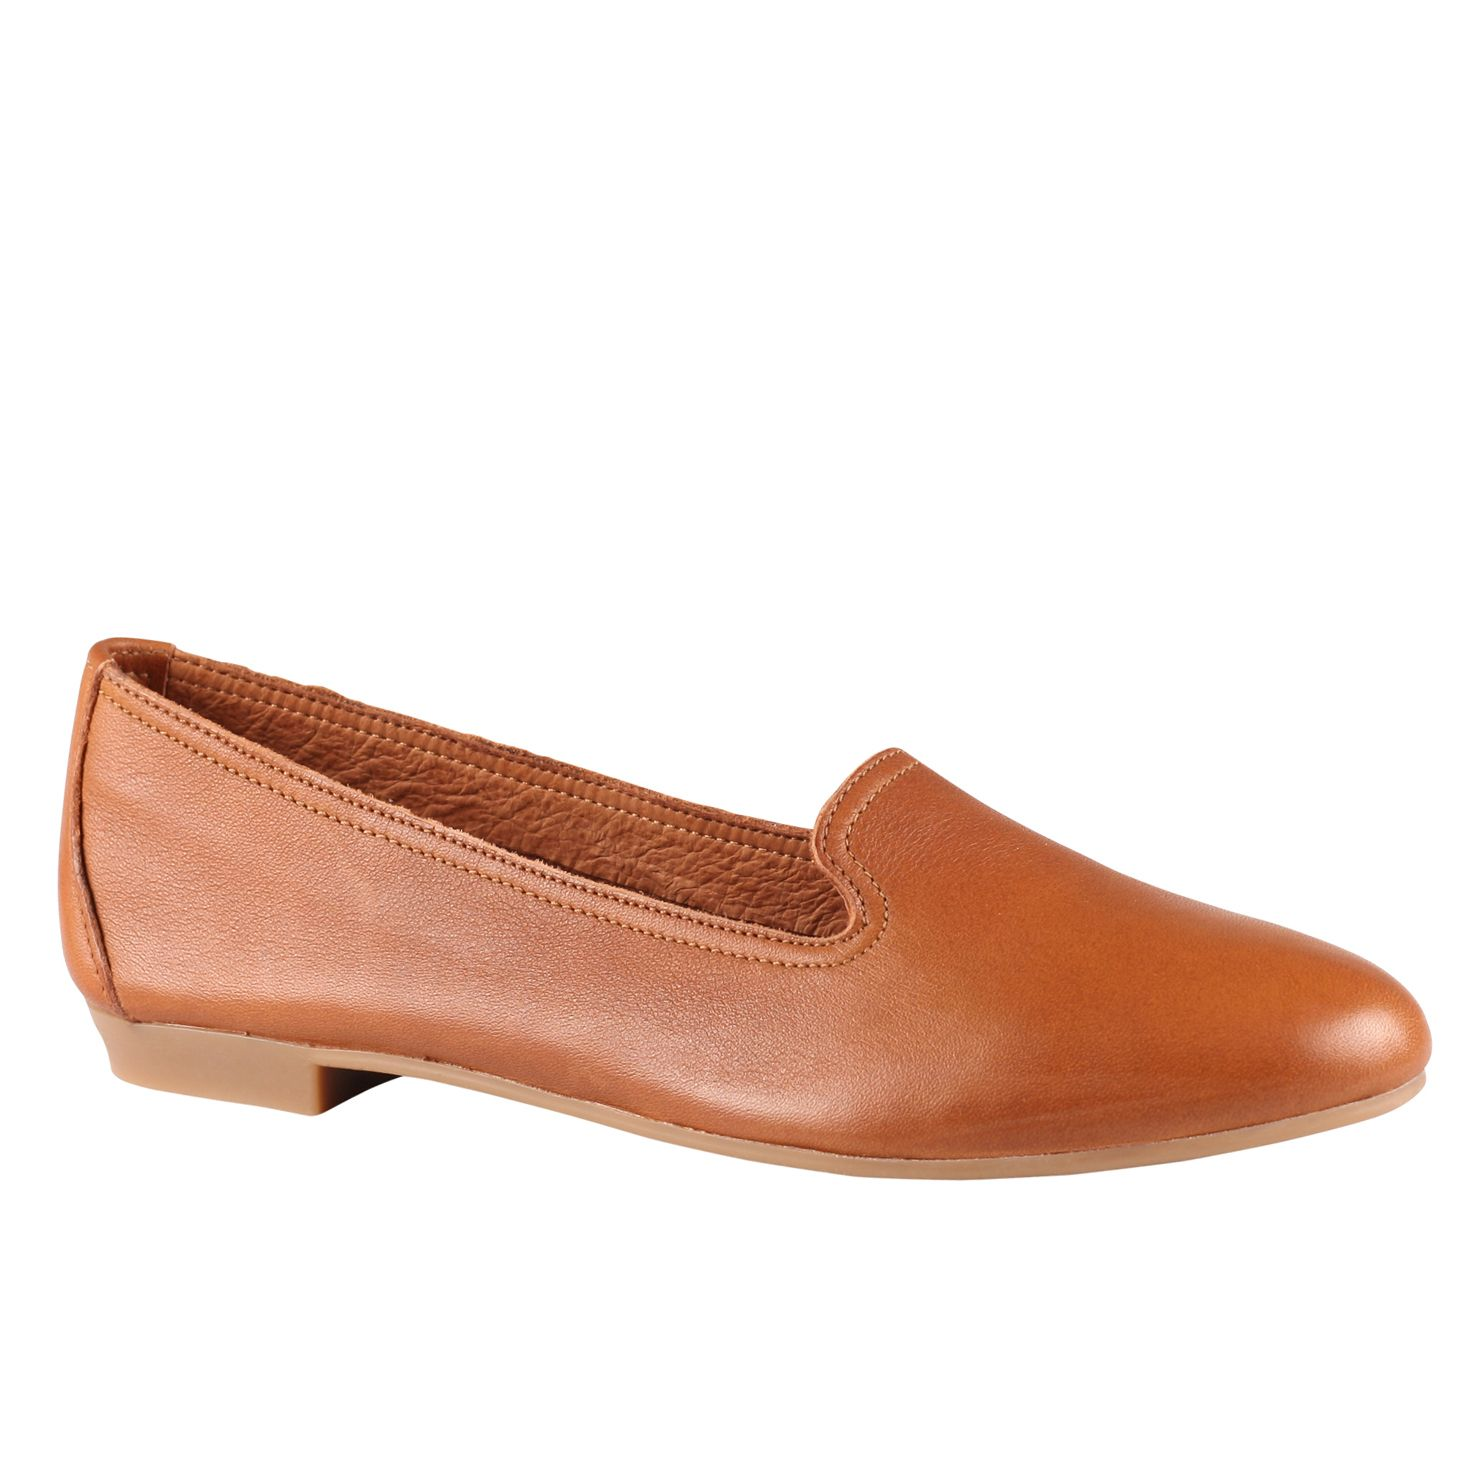 Aldo Zenica Leather Loafer Shoes In Brown (Cognac) | Lyst